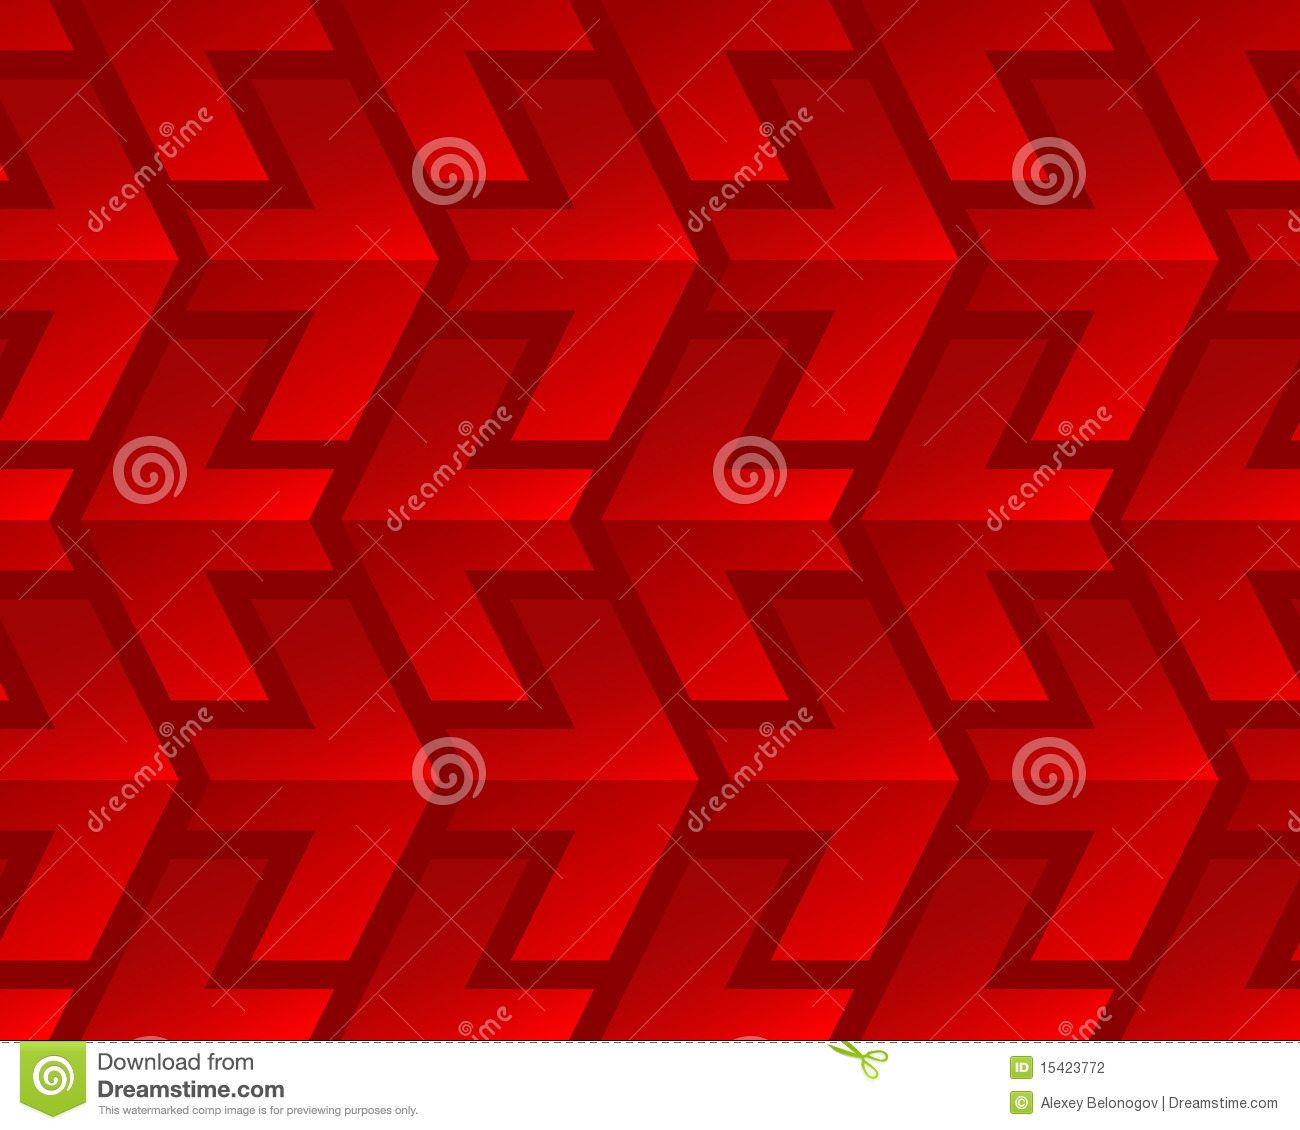 Red shiny arrows seamless pattern